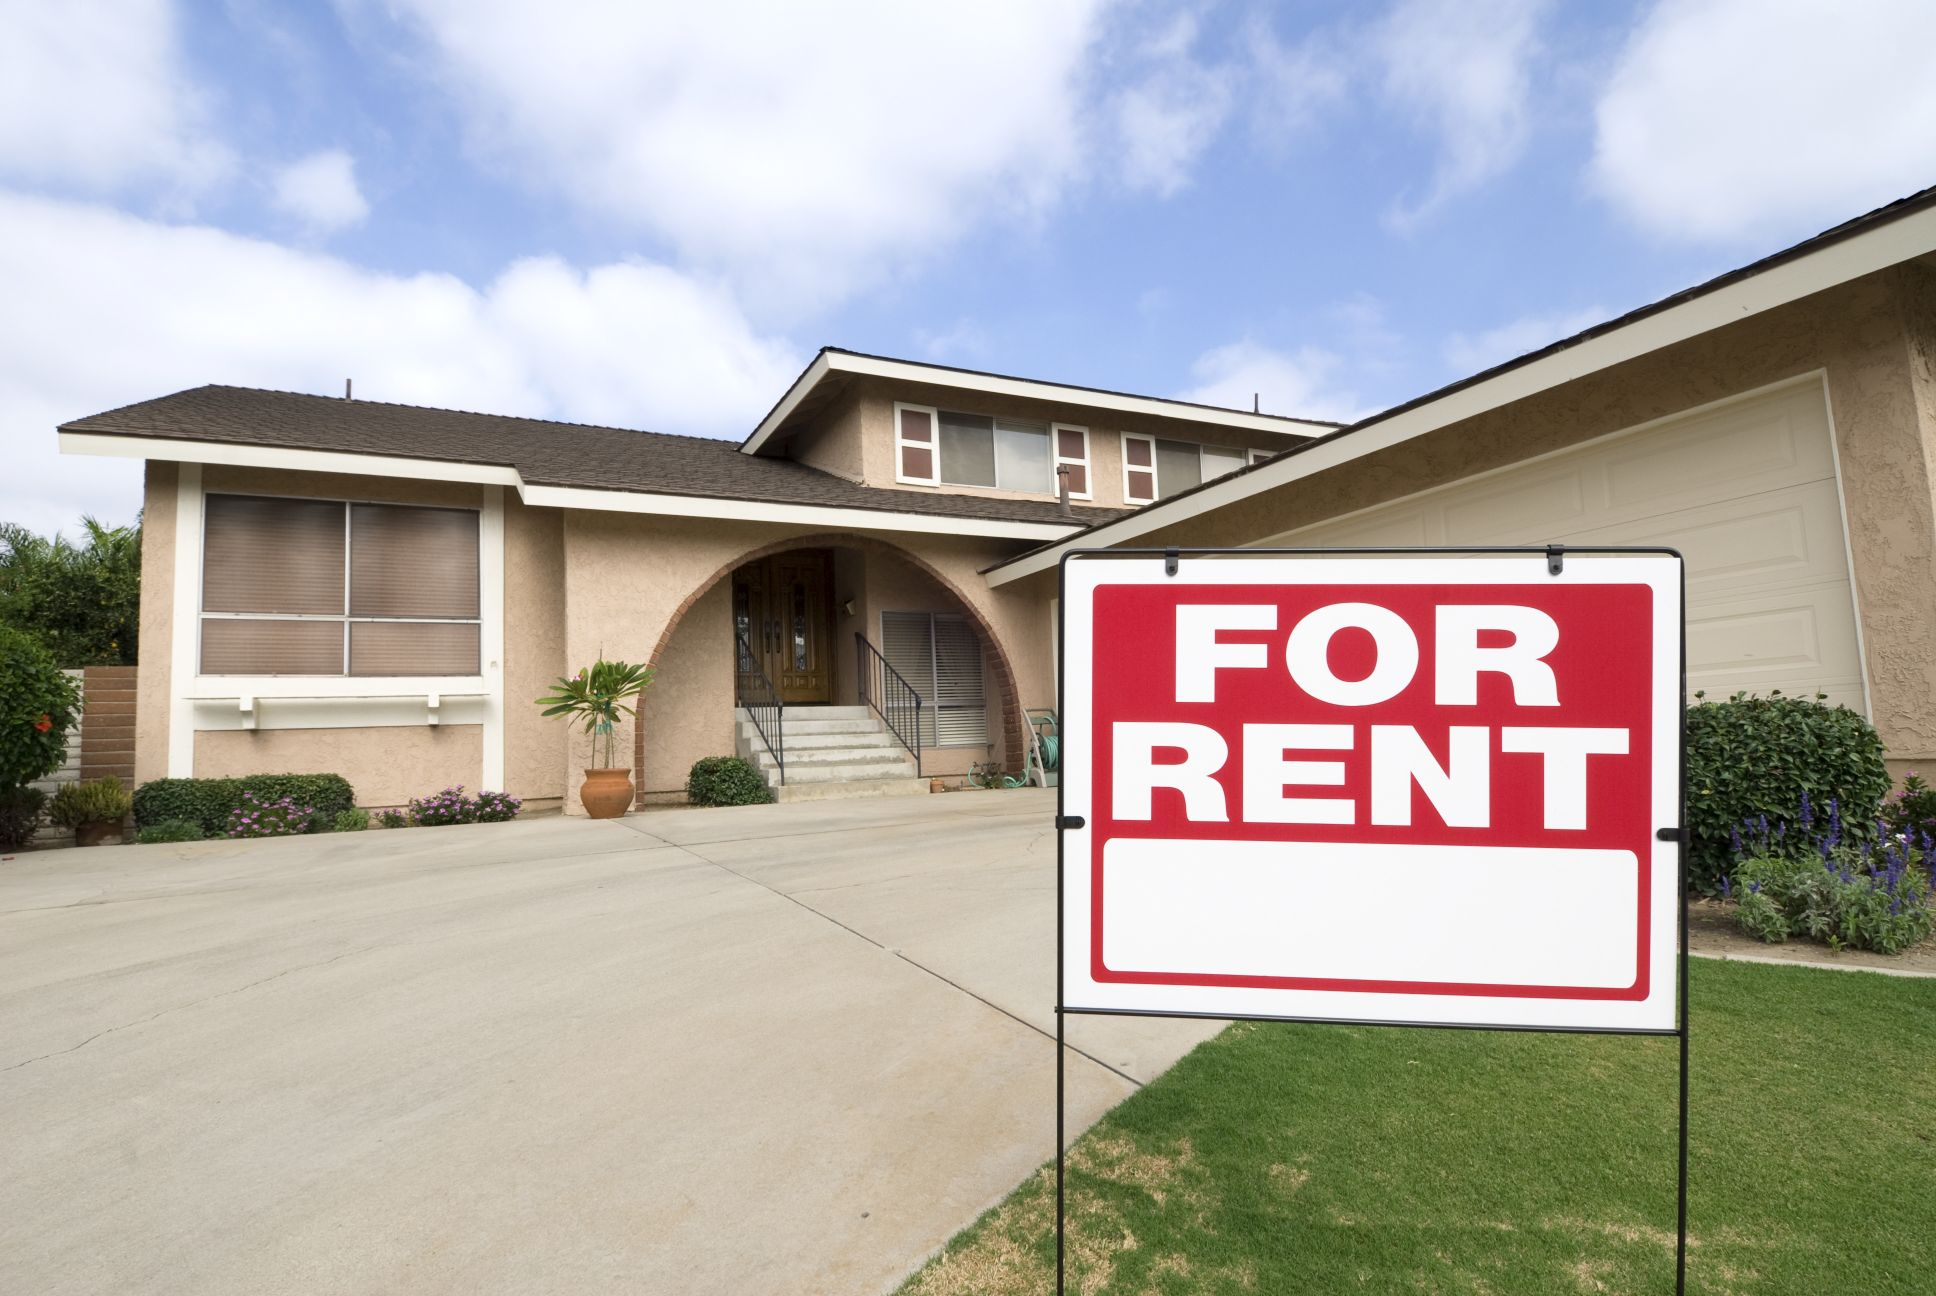 For rent sign outside of a single family home